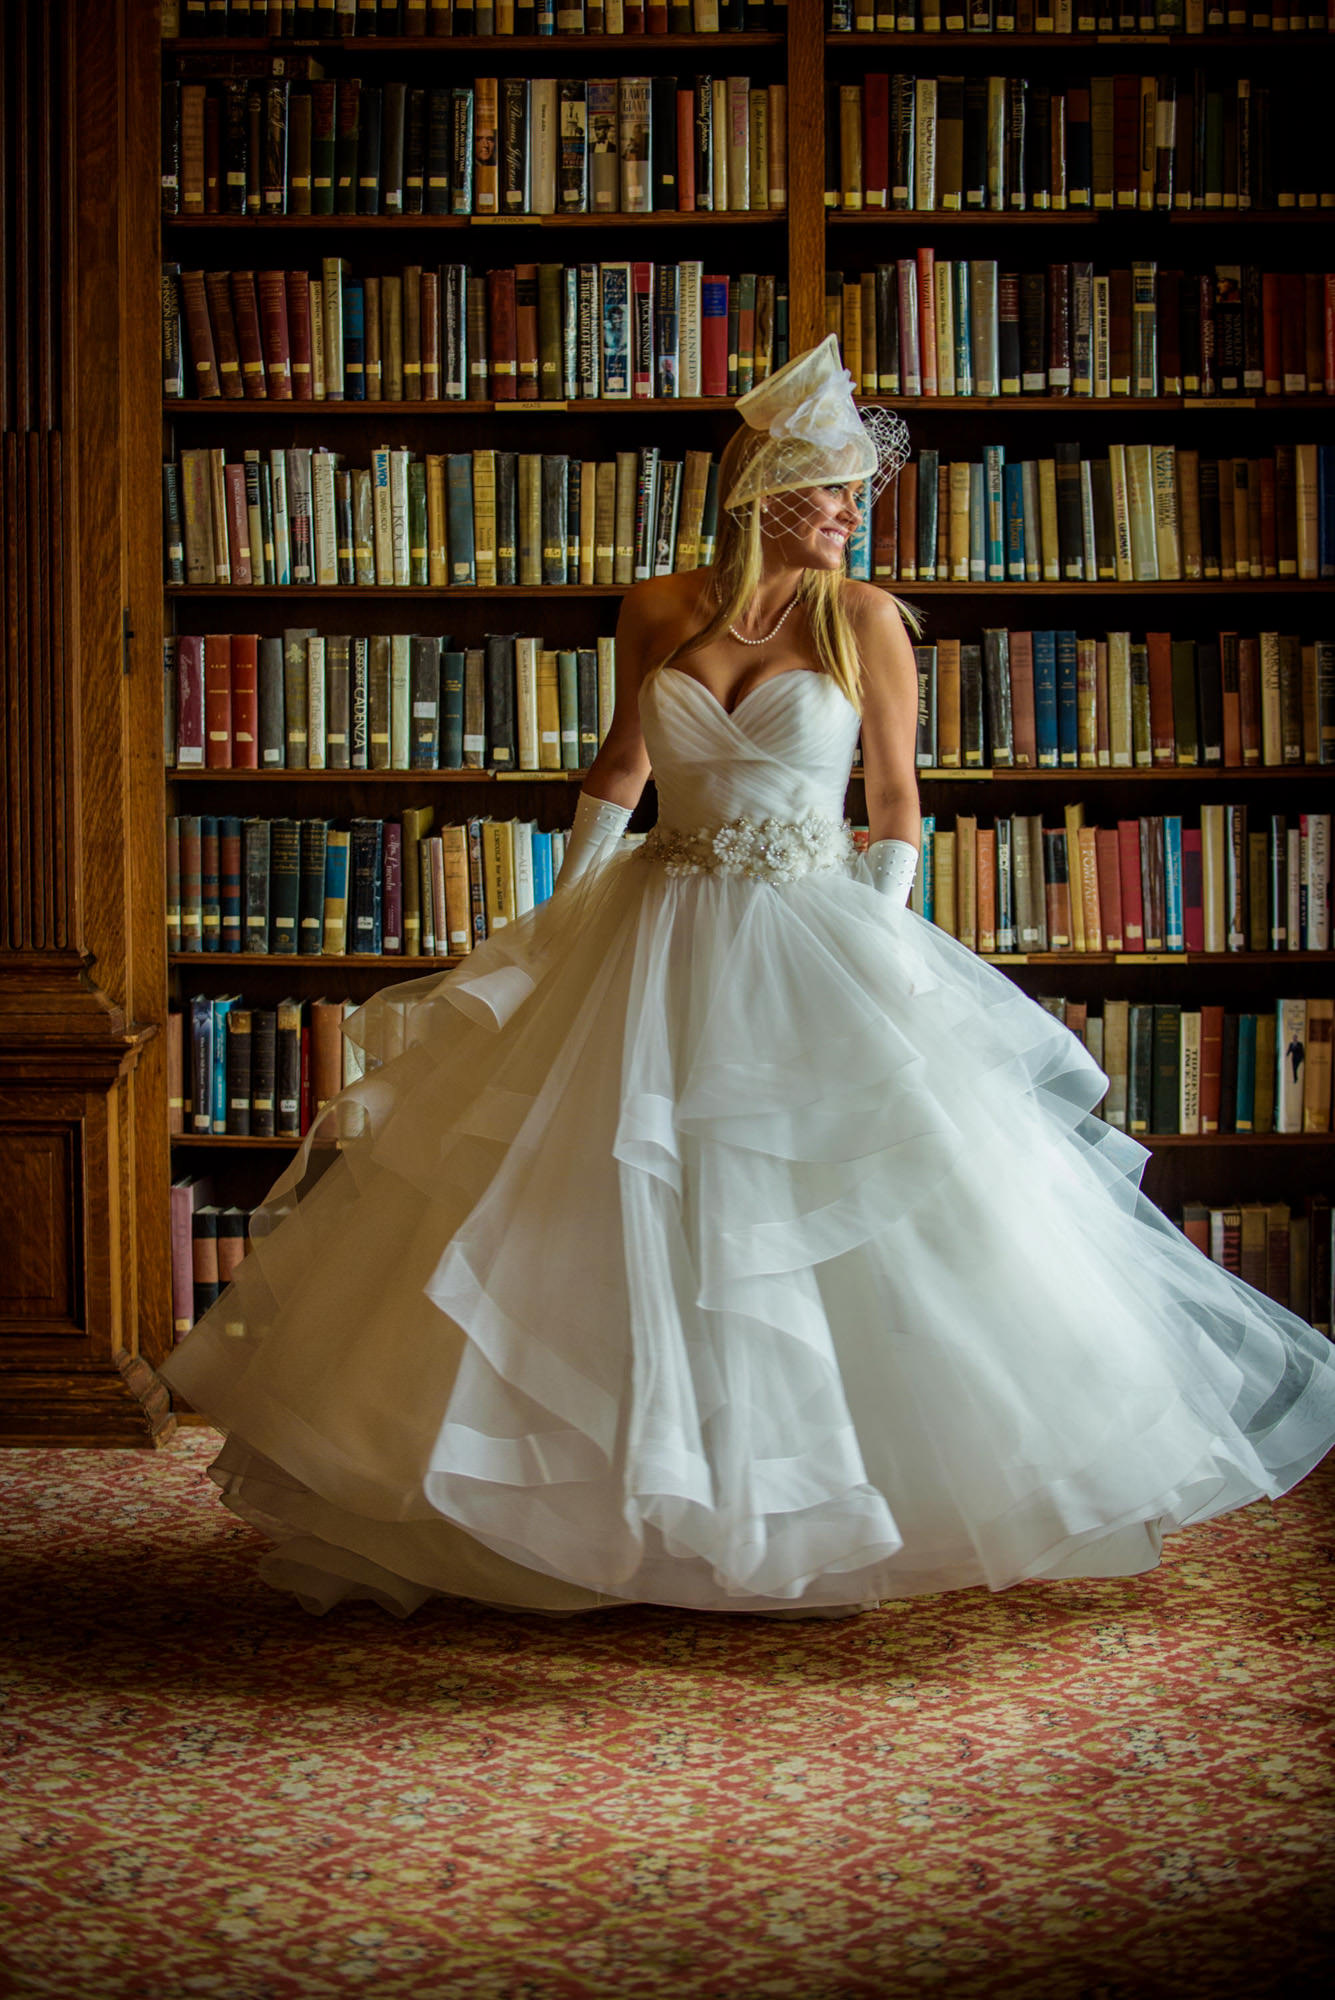 Bride University Club of Chicago Library